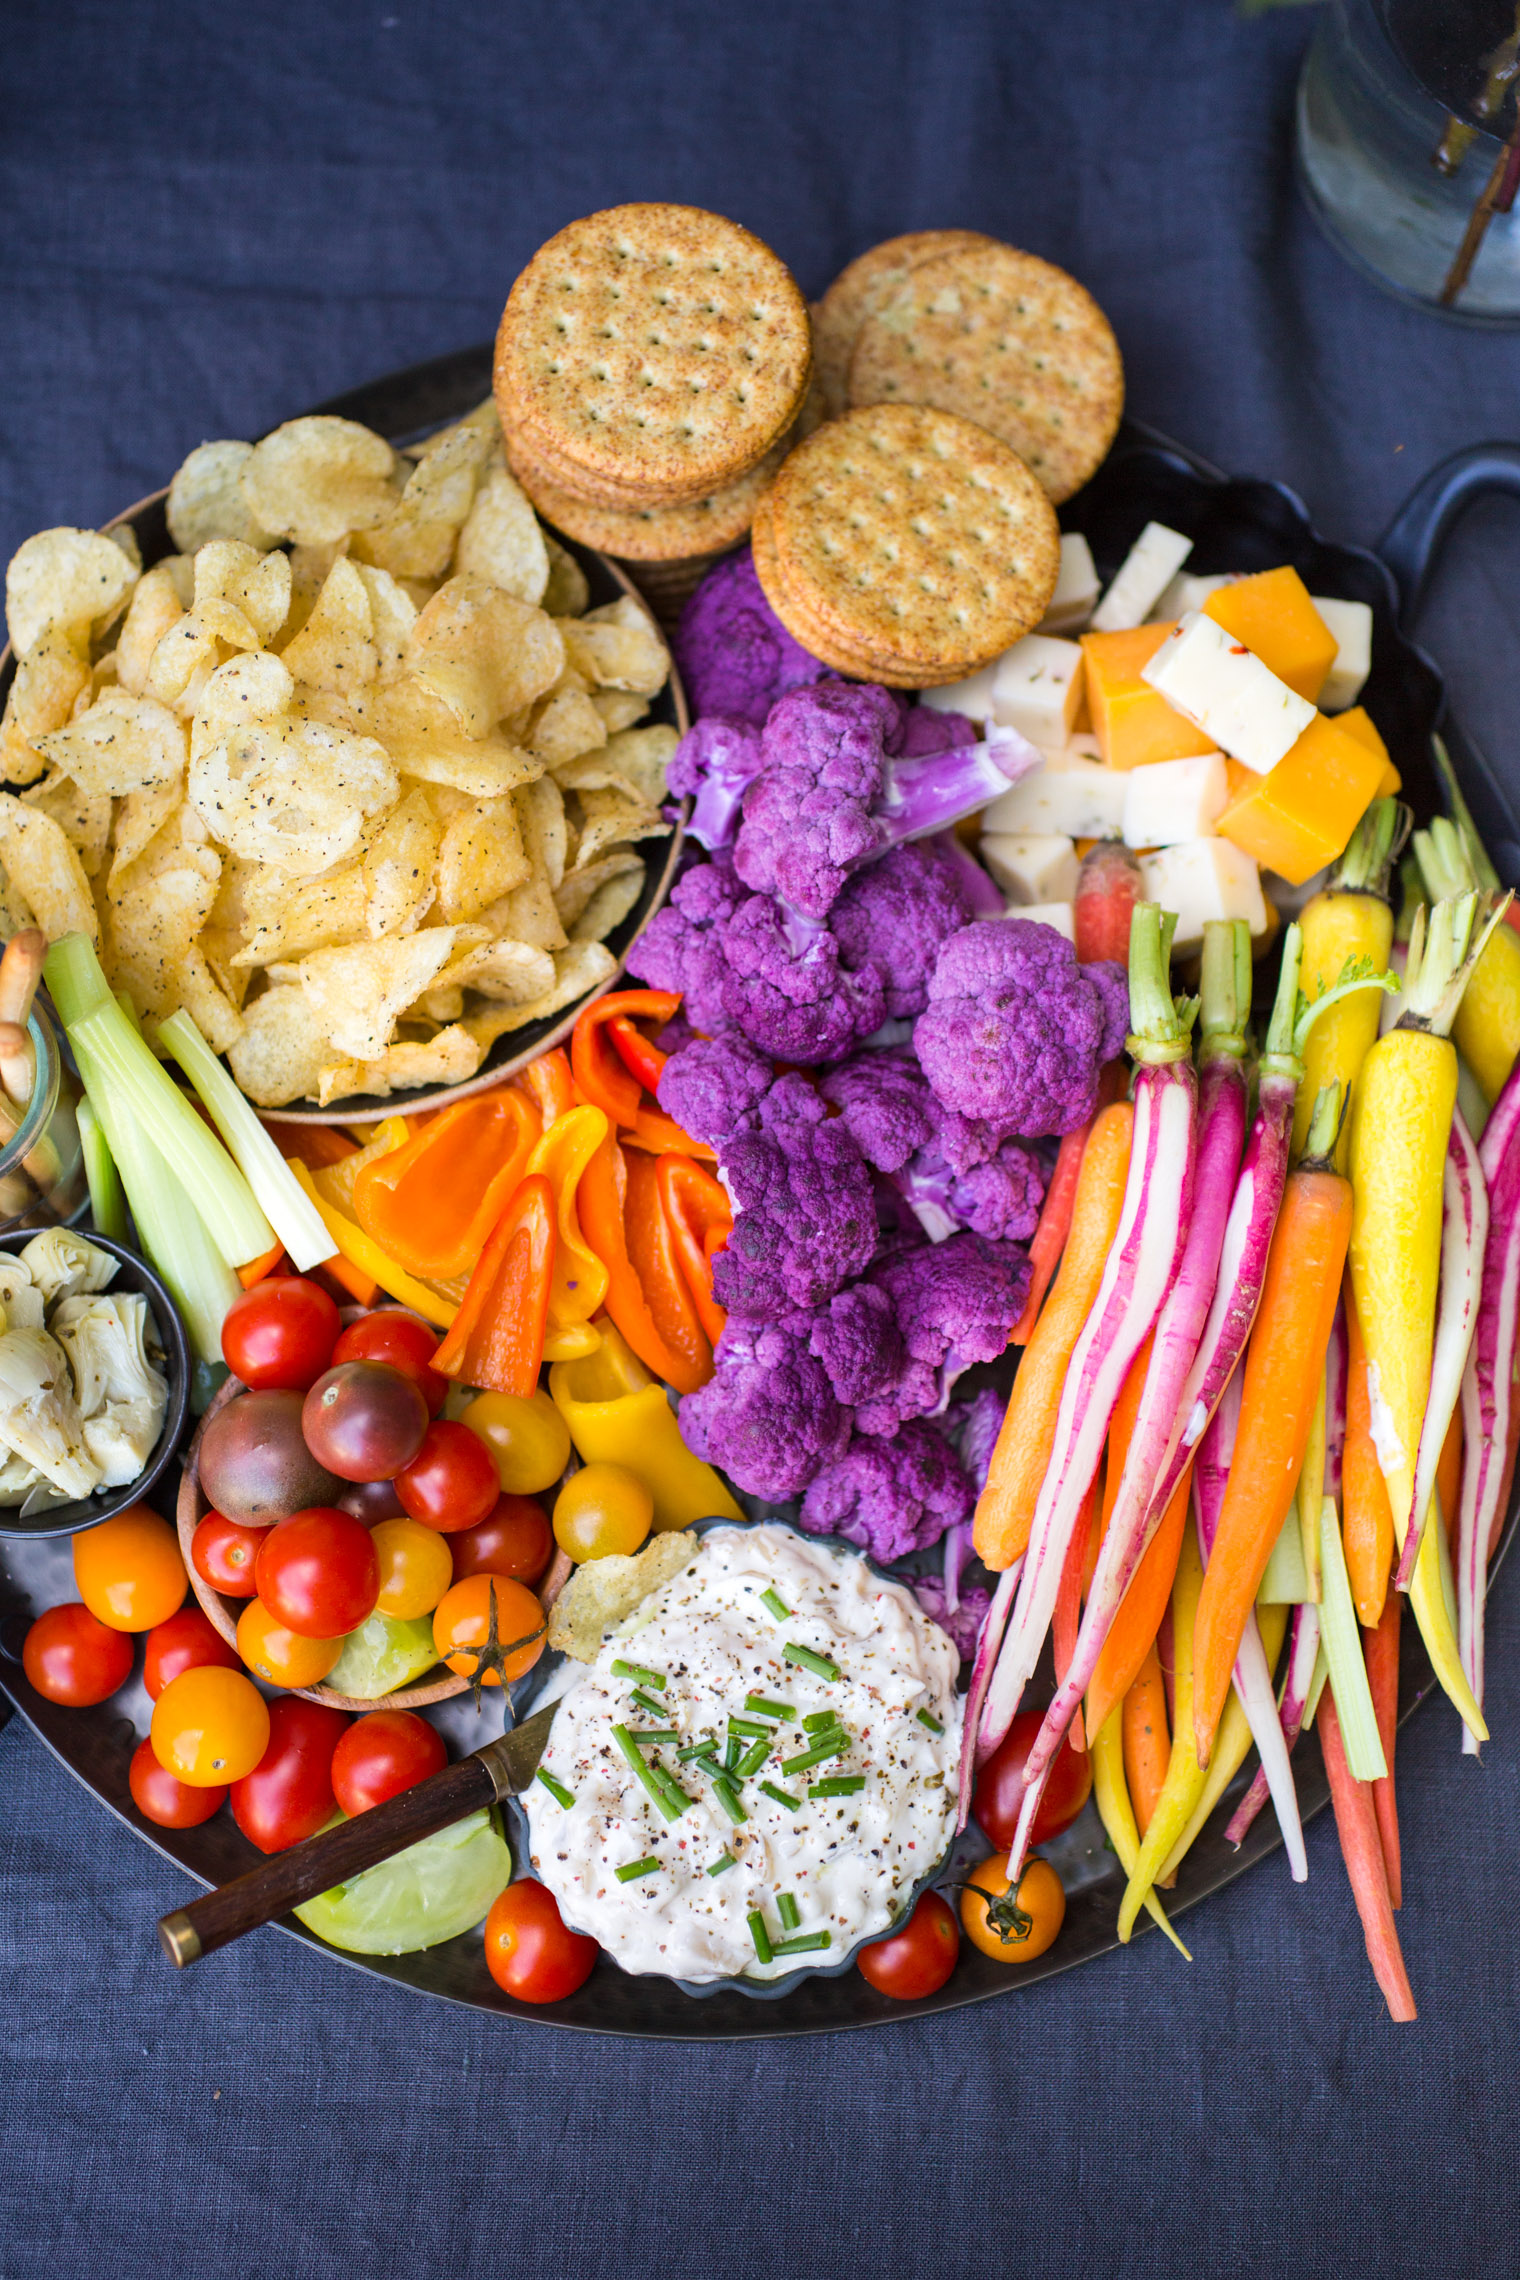 Platters & Boards Cookbook Pre-Order Bonus and Happy Hour Platter + Red Wine Onion Dip!